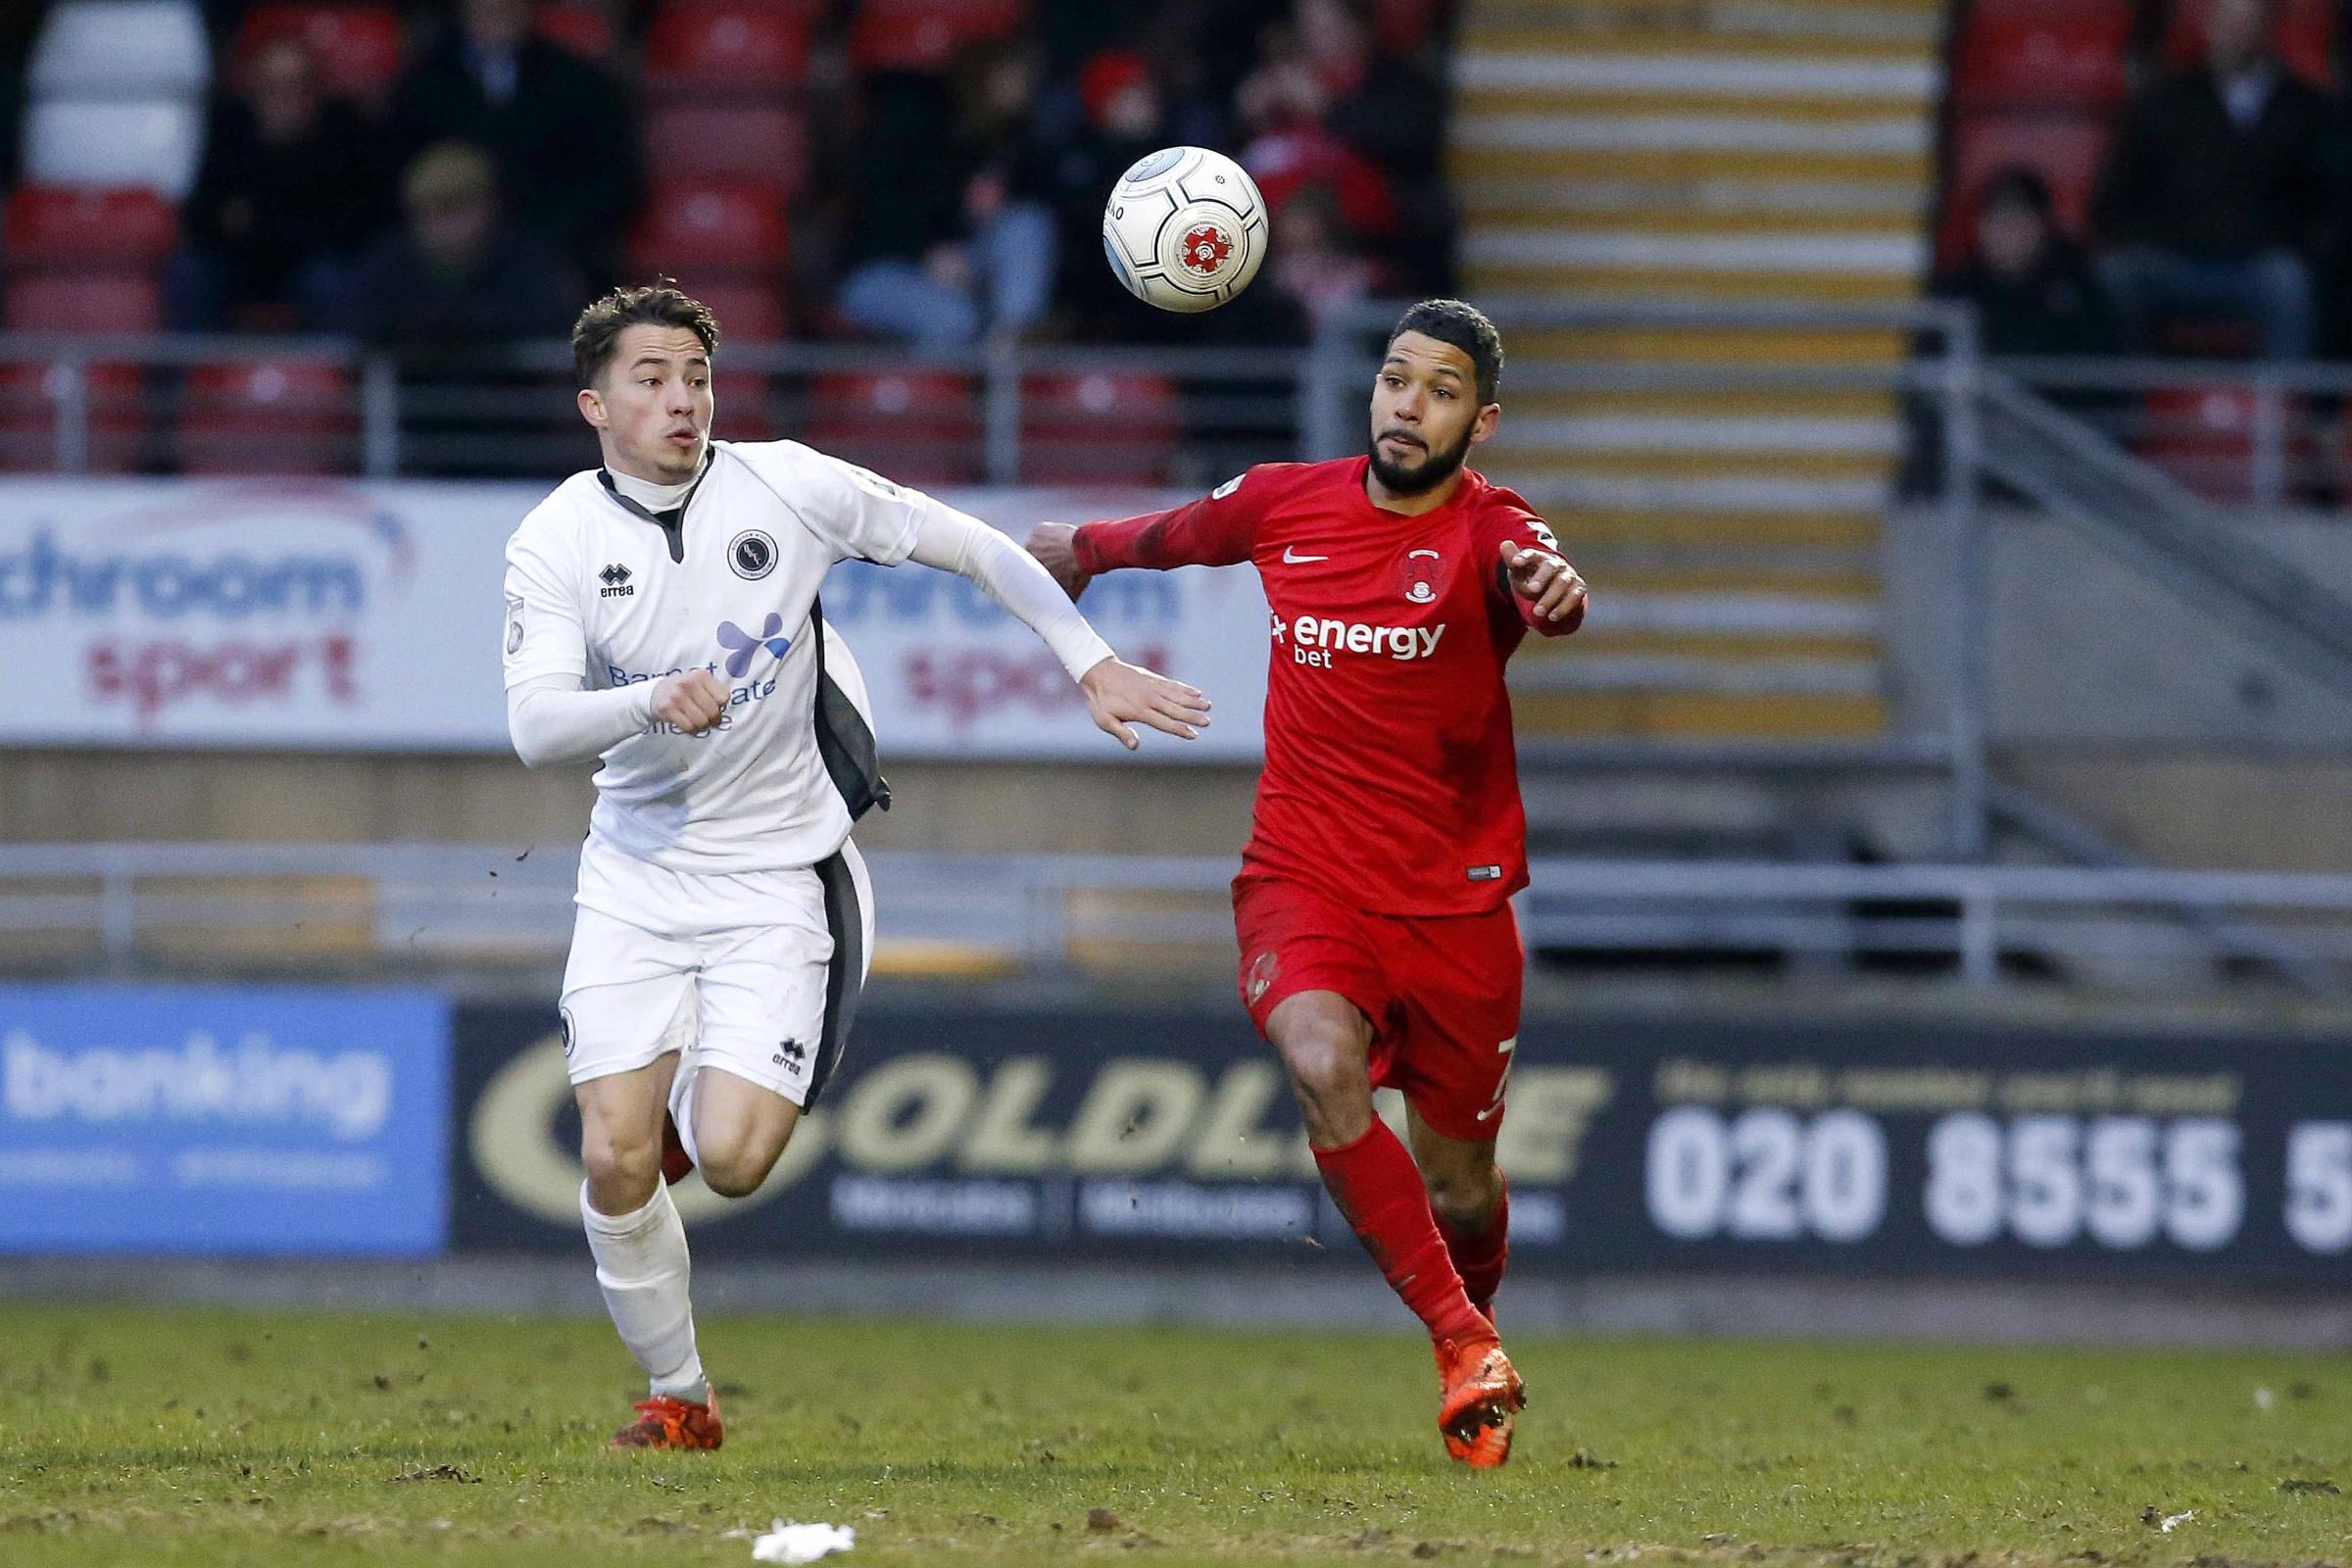 Jobi McAnuff's recovery is progressing well according to Leyton Orient boss Justin Edinburgh. Picture: Action Images